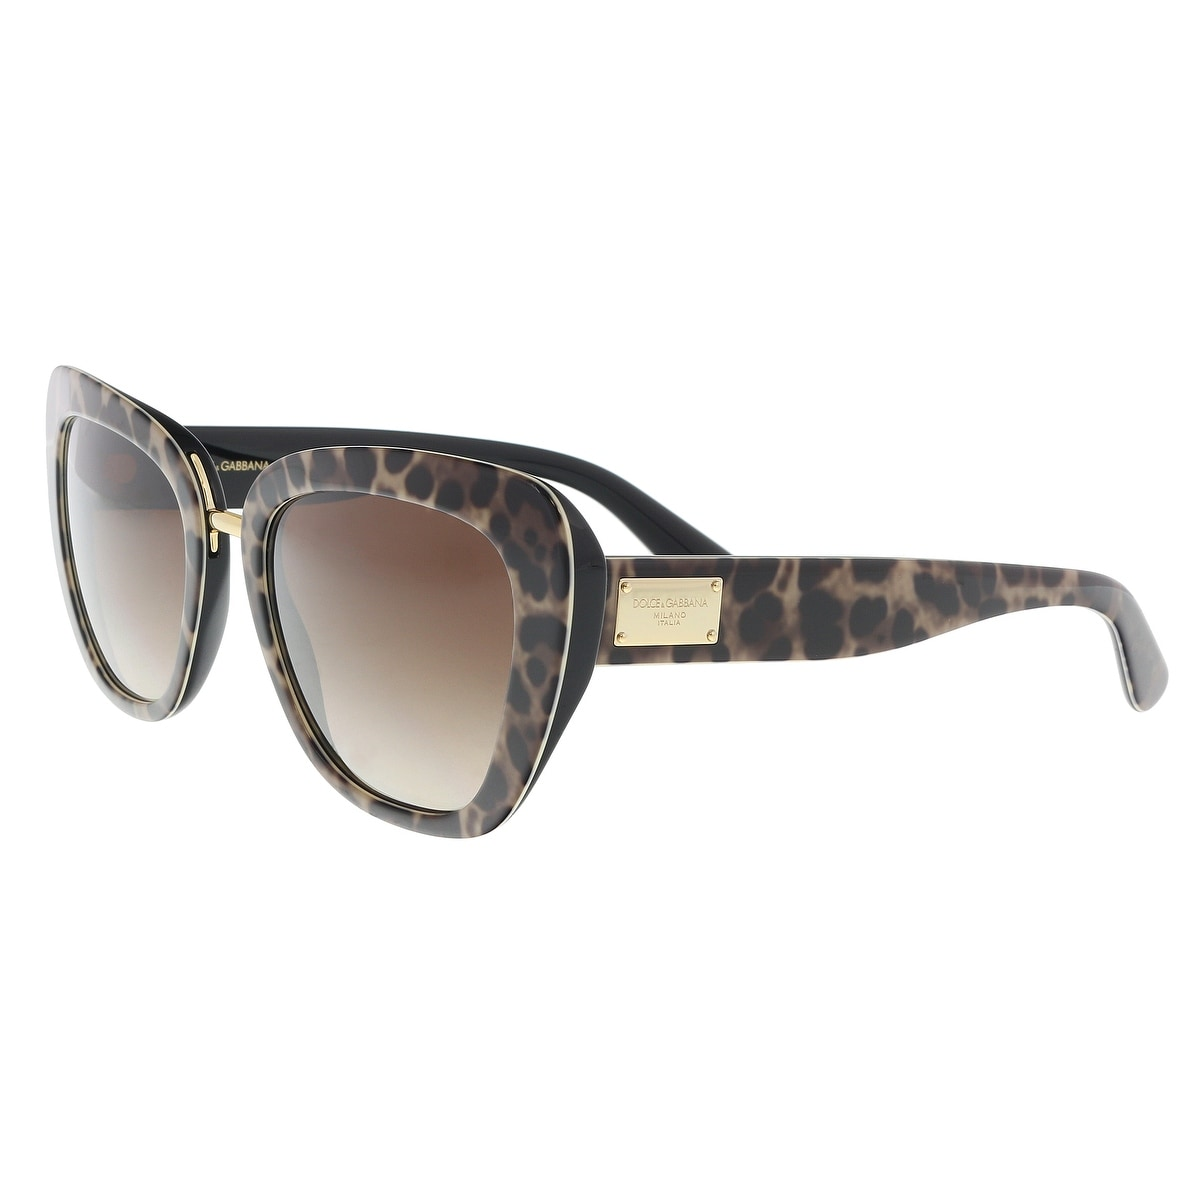 06aa97785ac4 Dolce & Gabbana Women's Sunglasses | Find Great Sunglasses Deals Shopping  at Overstock